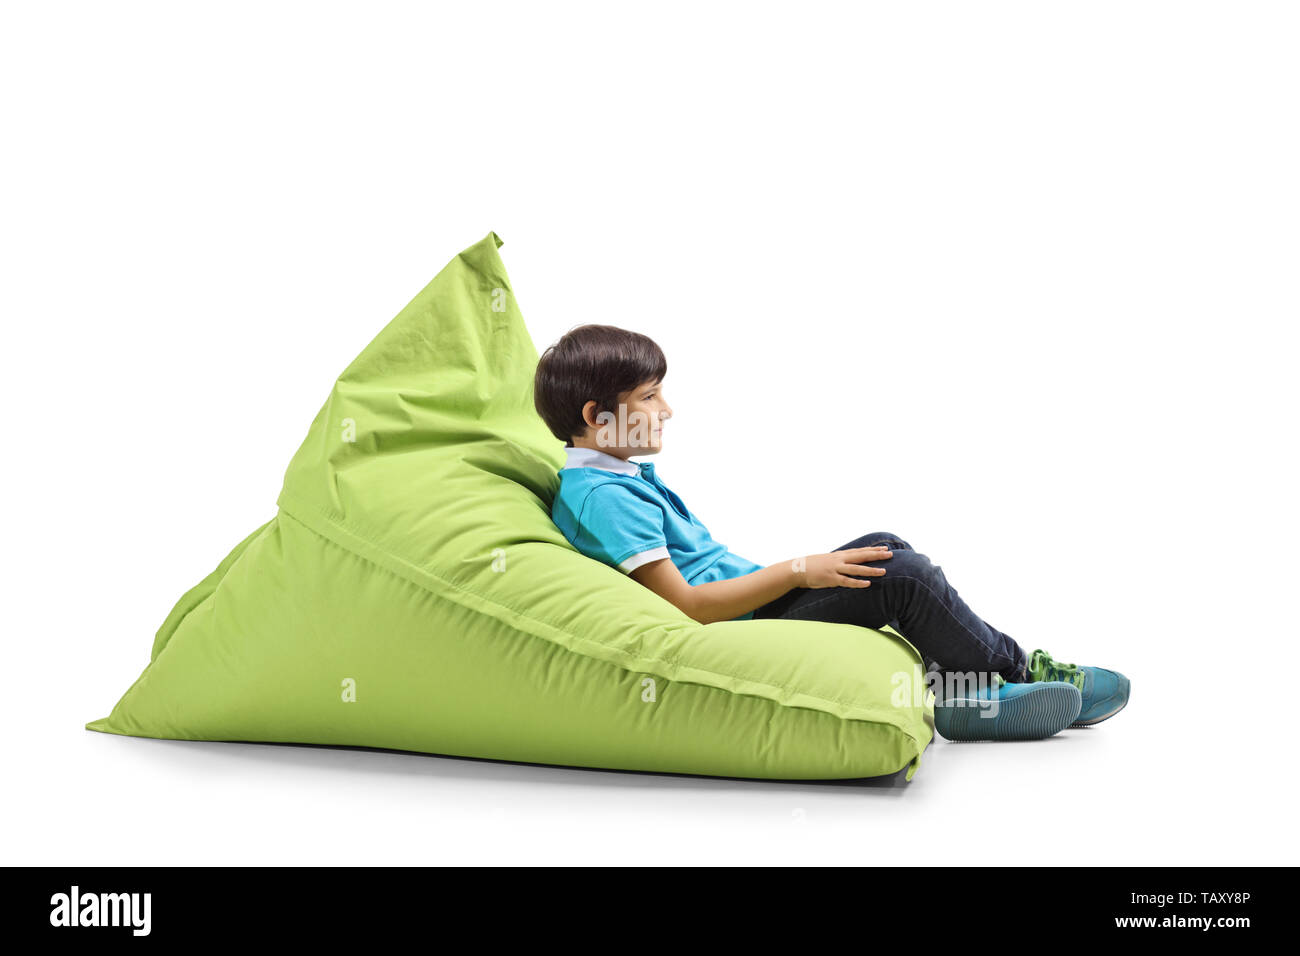 Full length profile shot of a boy relaxing on a green bean bag isolated on white background - Stock Image